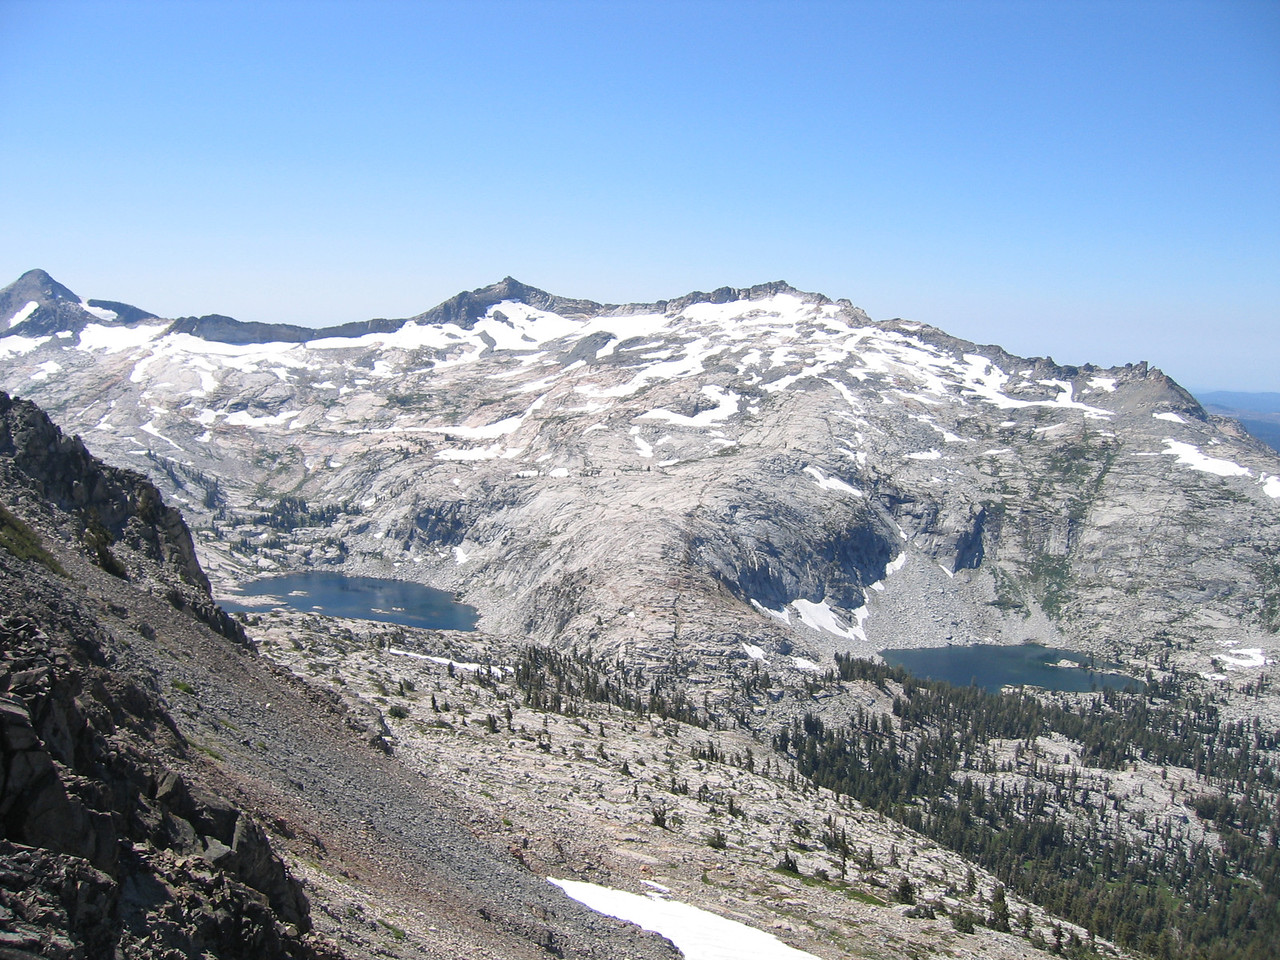 Looking Southwest from Jack's Peak...<br /> <br /> Mosquito Pass below, <br /> <br /> Aloha Lake to the left of the pass, <br /> <br /> Clyde Lake to the right of the pass<br /> <br /> Peaks Price, Aggasiz, and Pyramid going R to L.